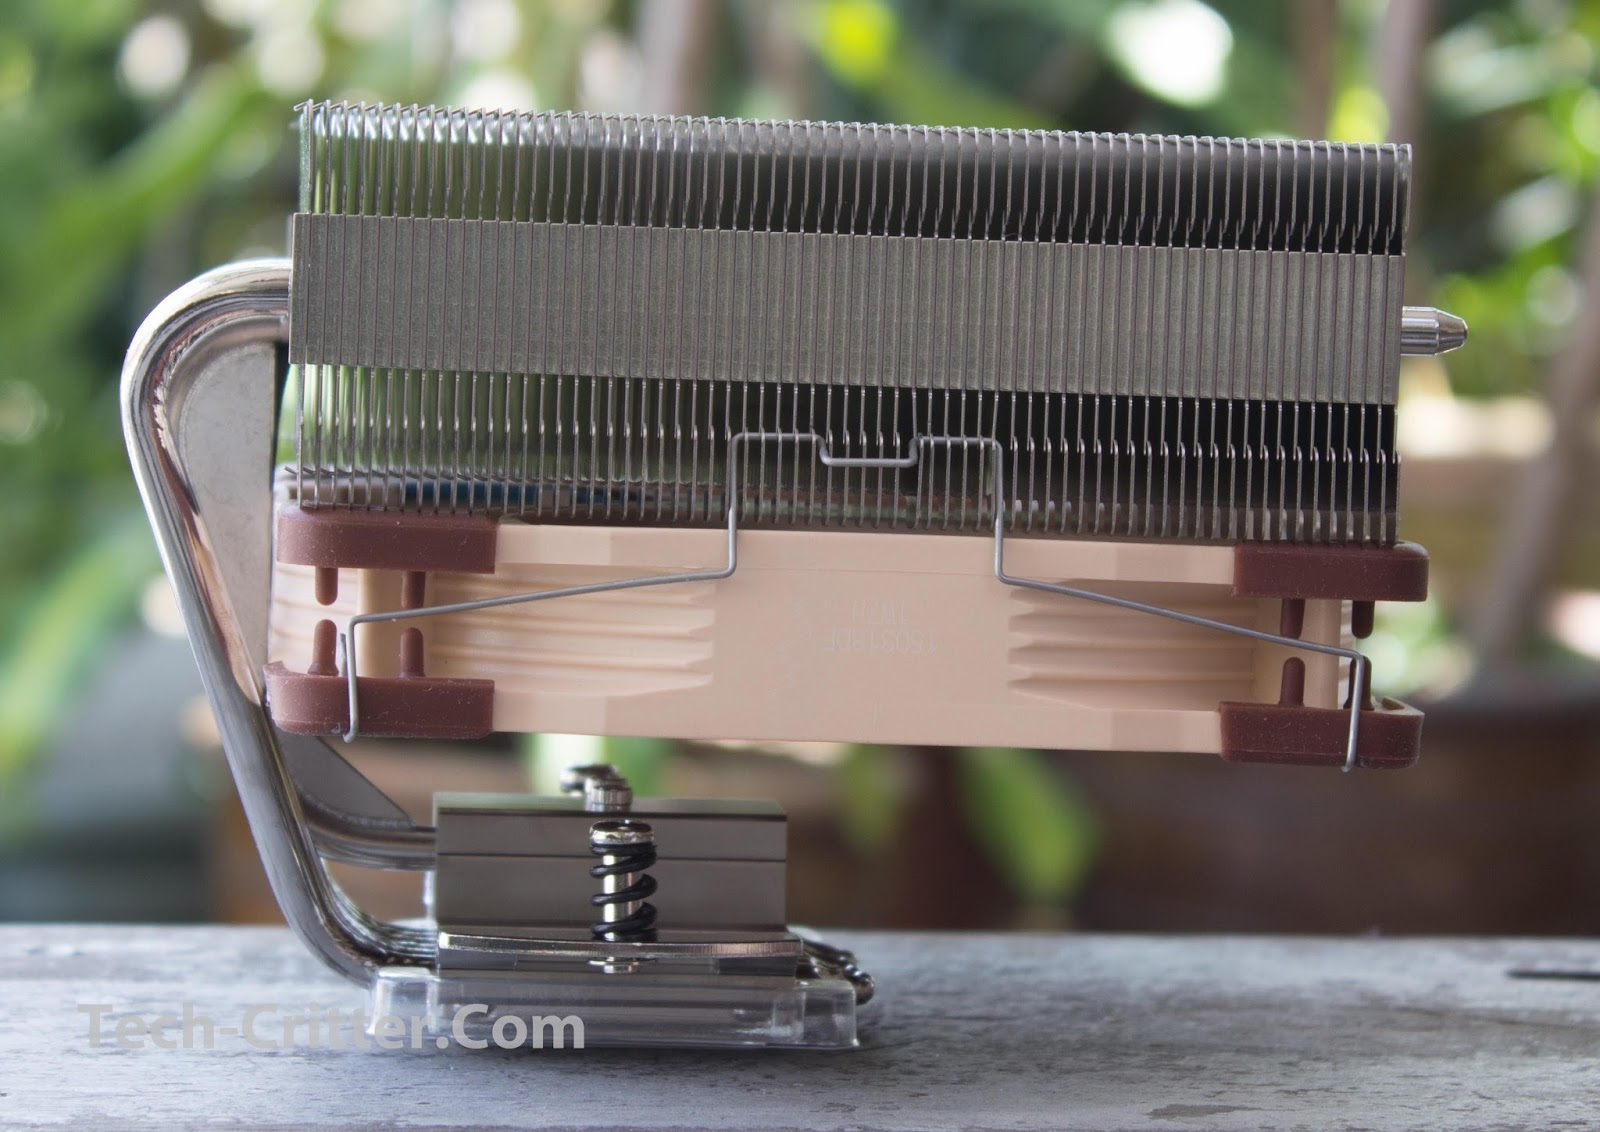 Unboxing & Review: Noctua NH-C14s 9